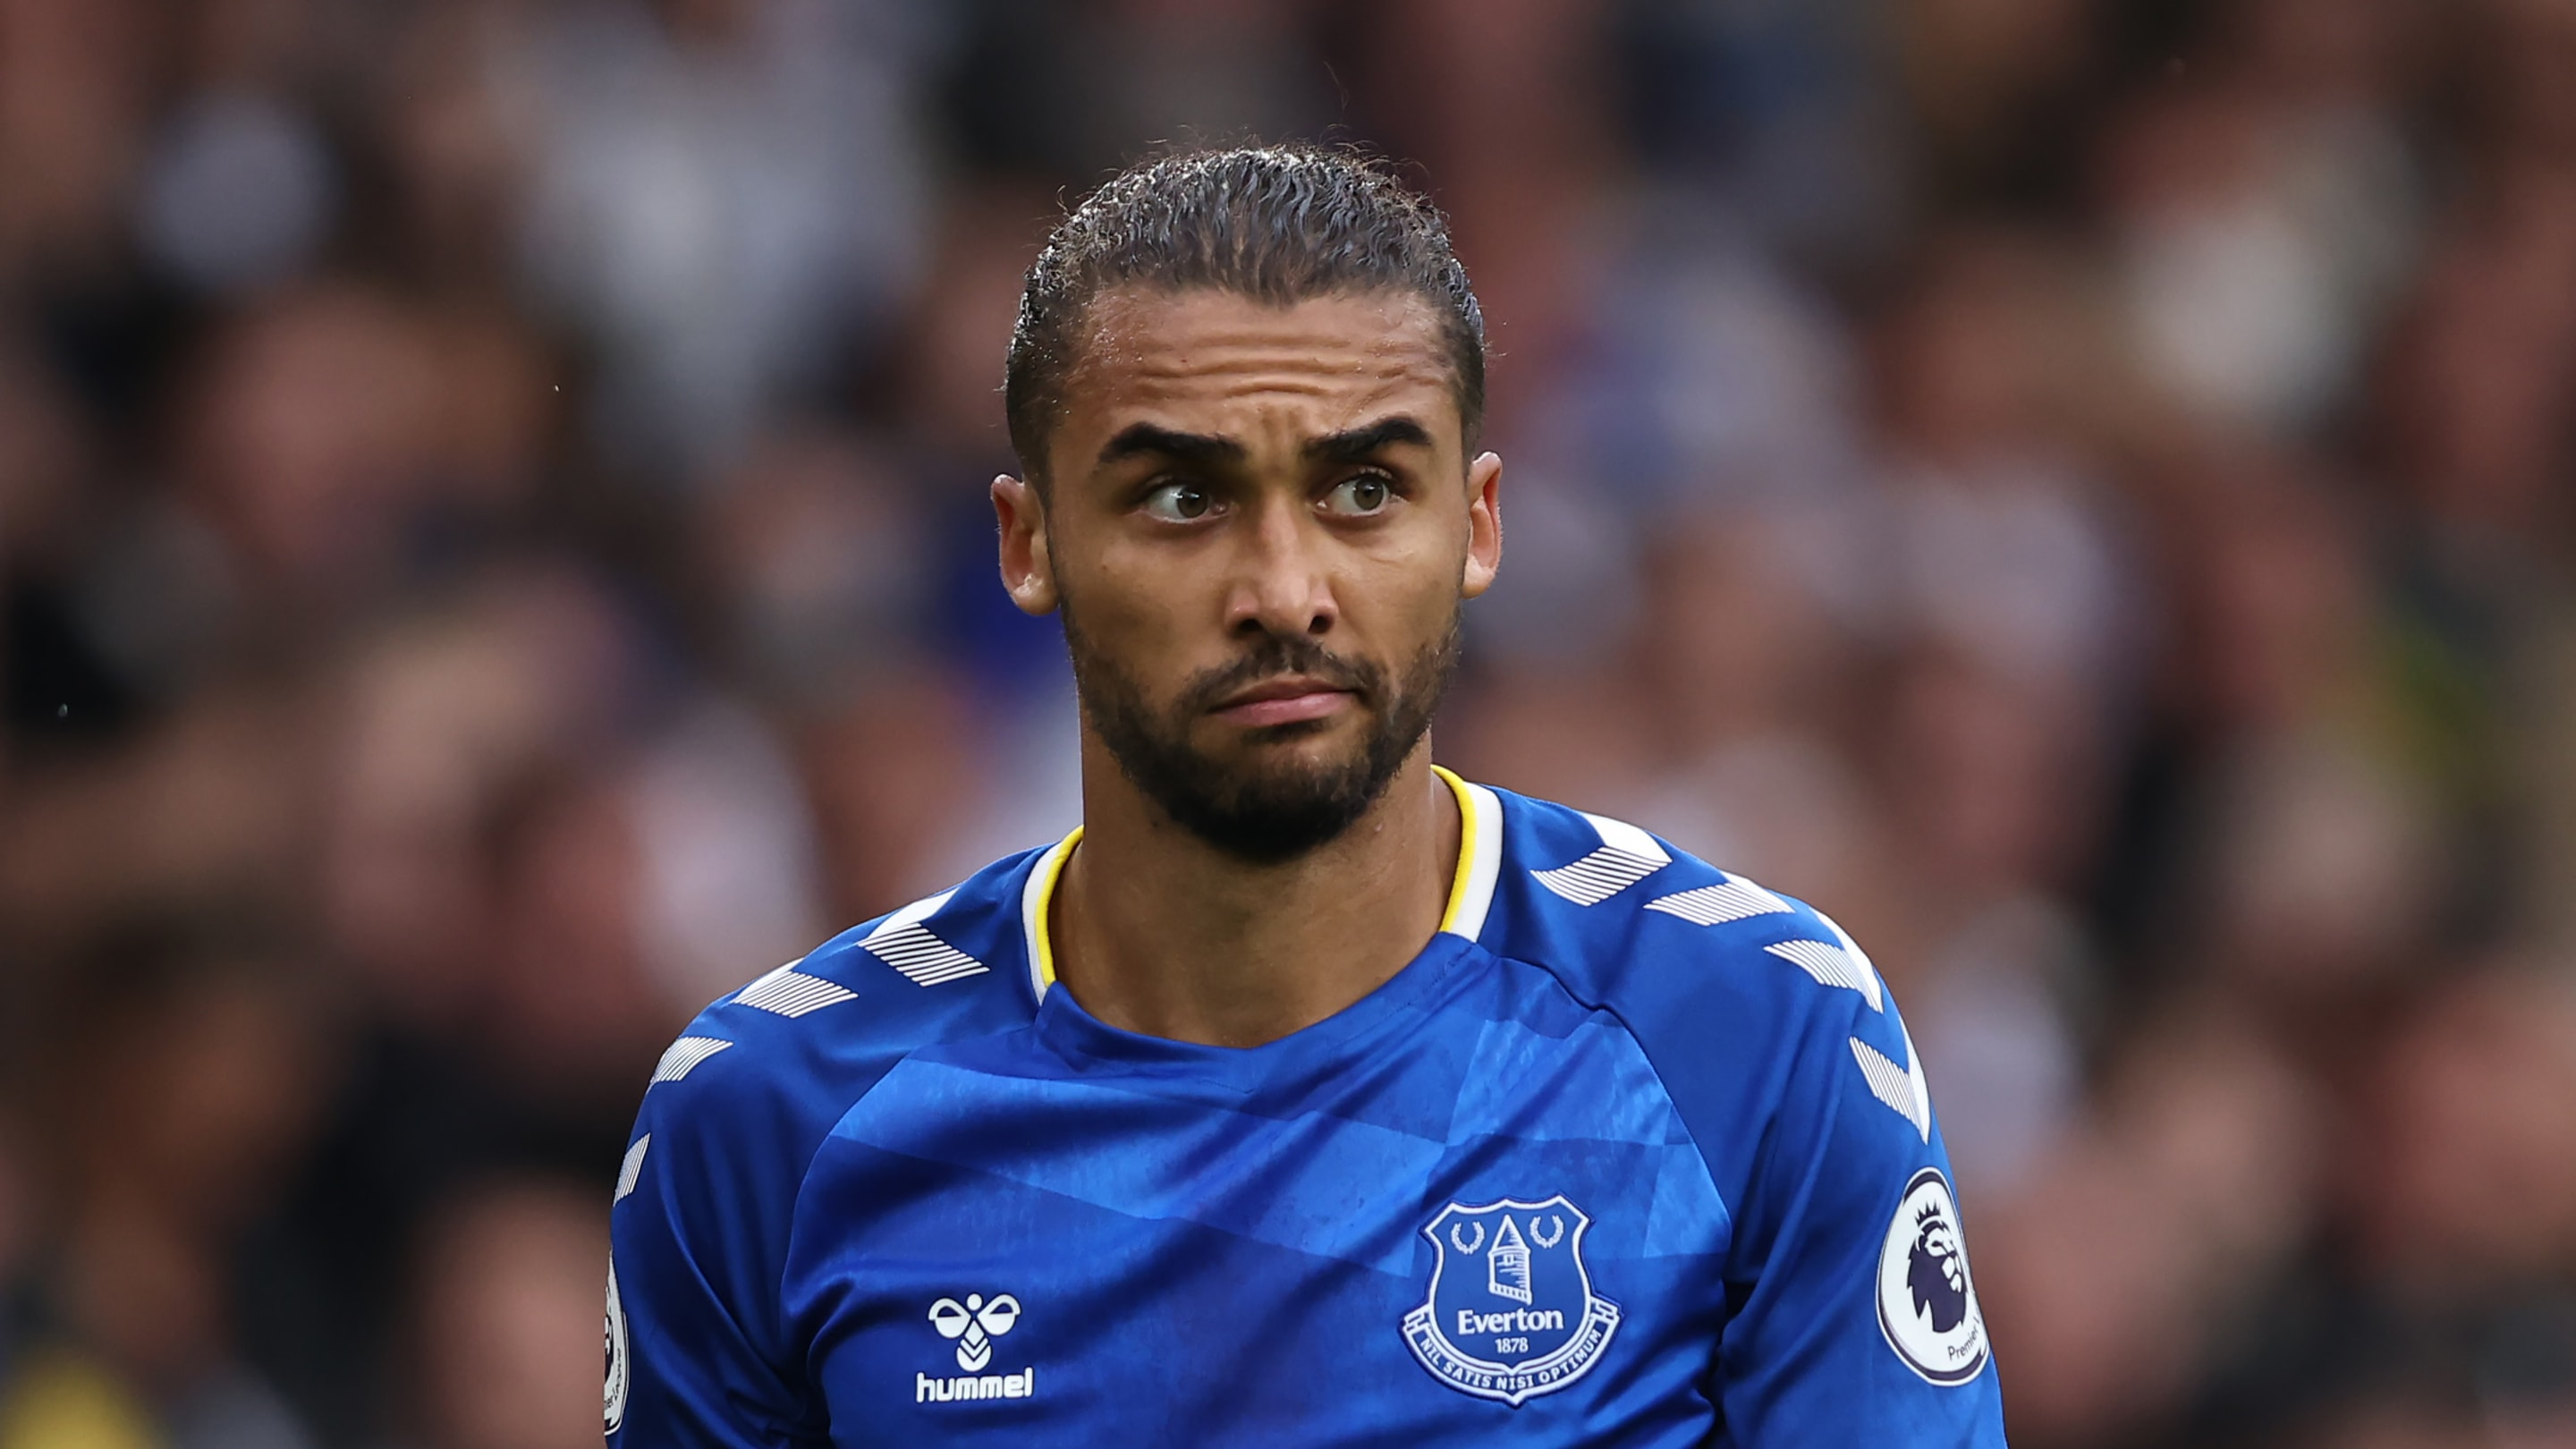 Dominic Calvert-Lewin suffers relapse in recovery from quadricep injury